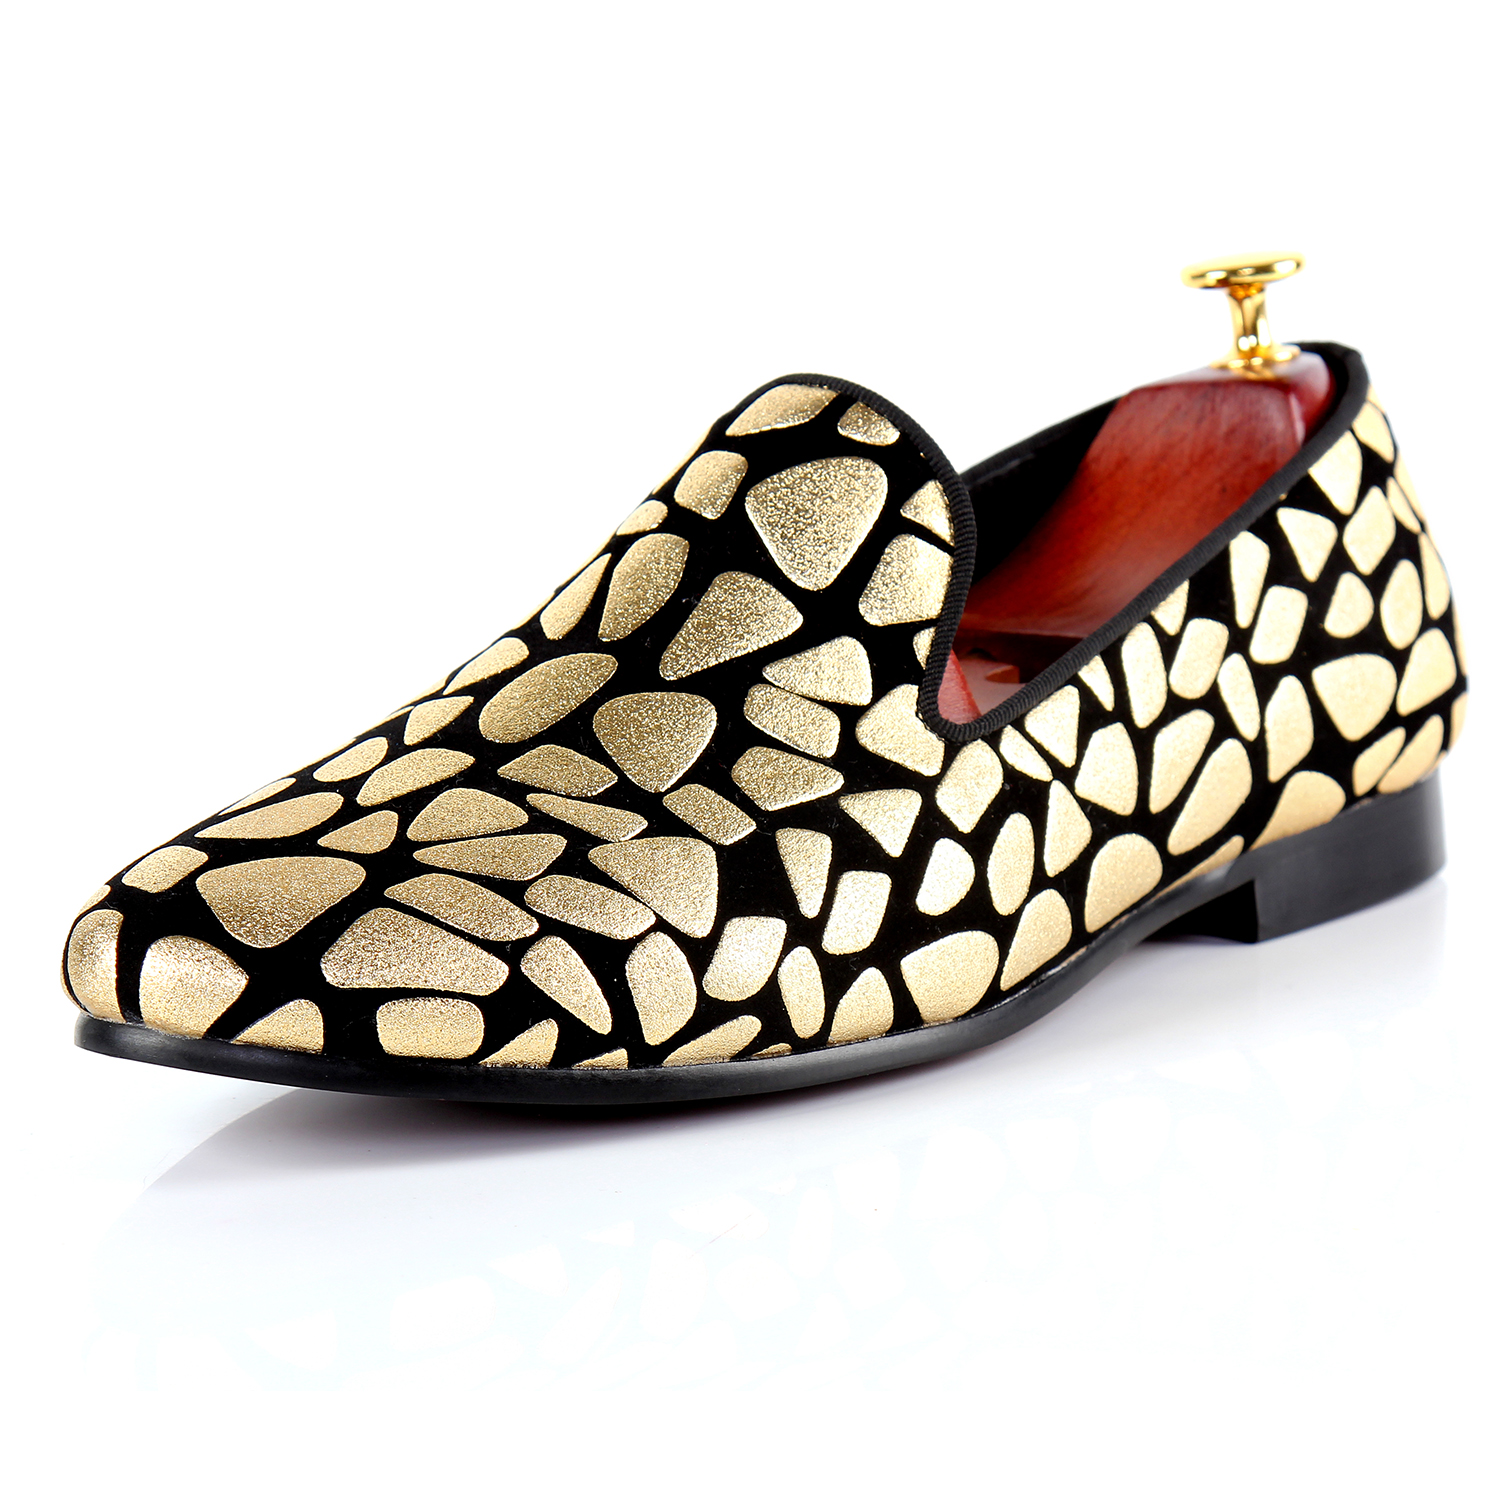 Harpelunde Mens Formal Shoes Gold Print Flat Shoes Hot Sell Wedding Shoes Size 7-9 harpelunde flat shoes leopard print red casual shoes brand men footwear free drop shipping size 7 14